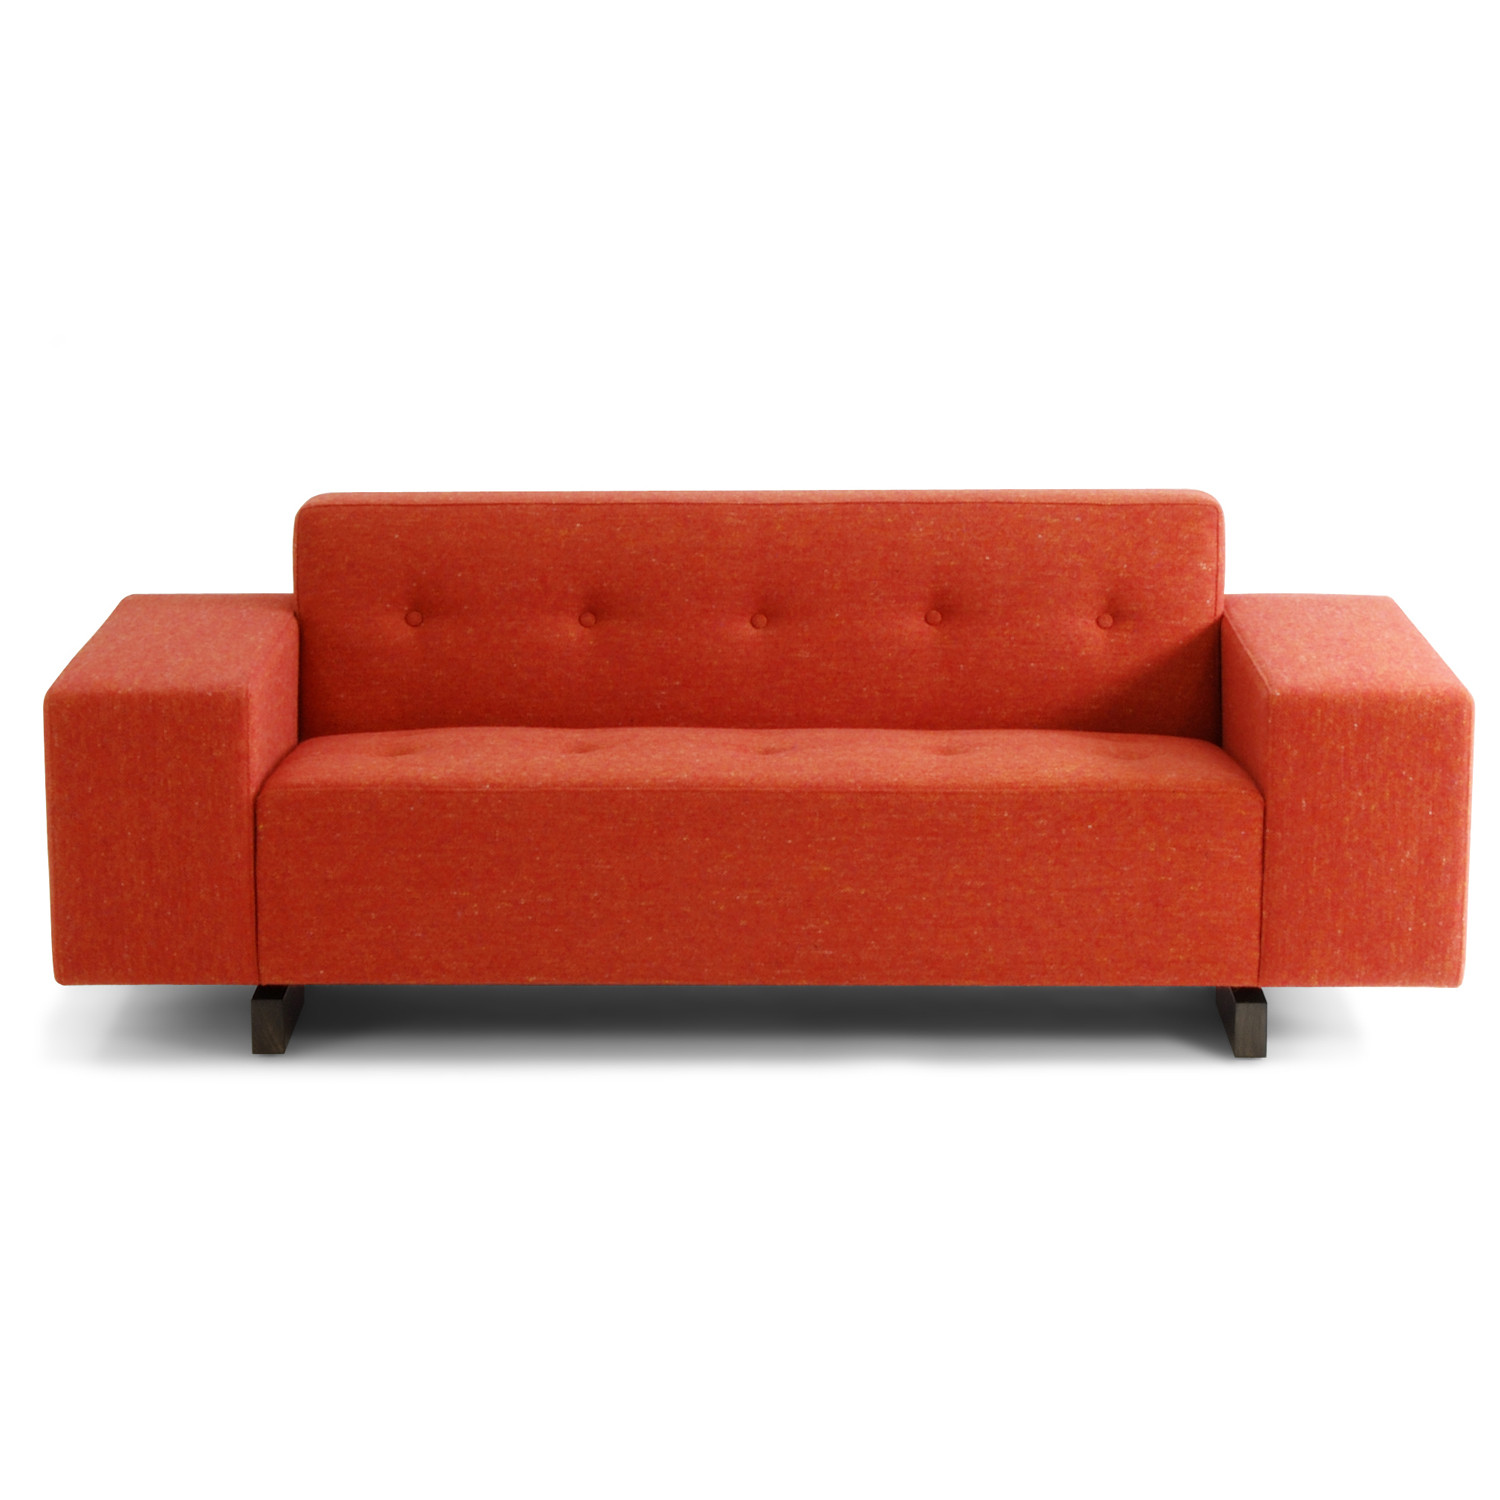 HM46n Sofa in Red